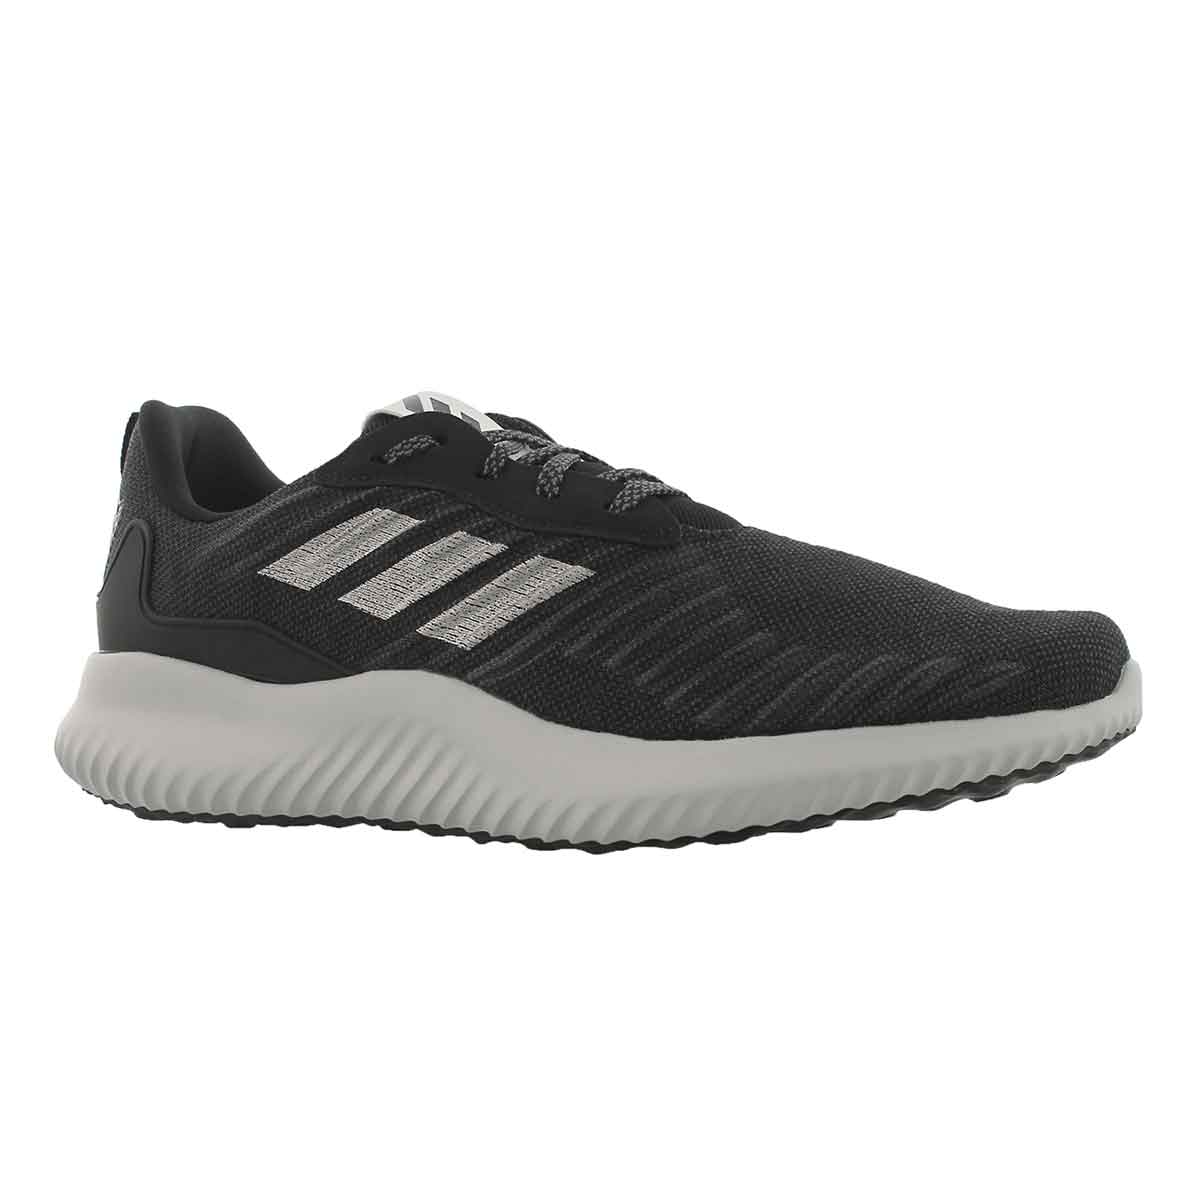 Men's ALPHABOUNCE black/silver running shoes